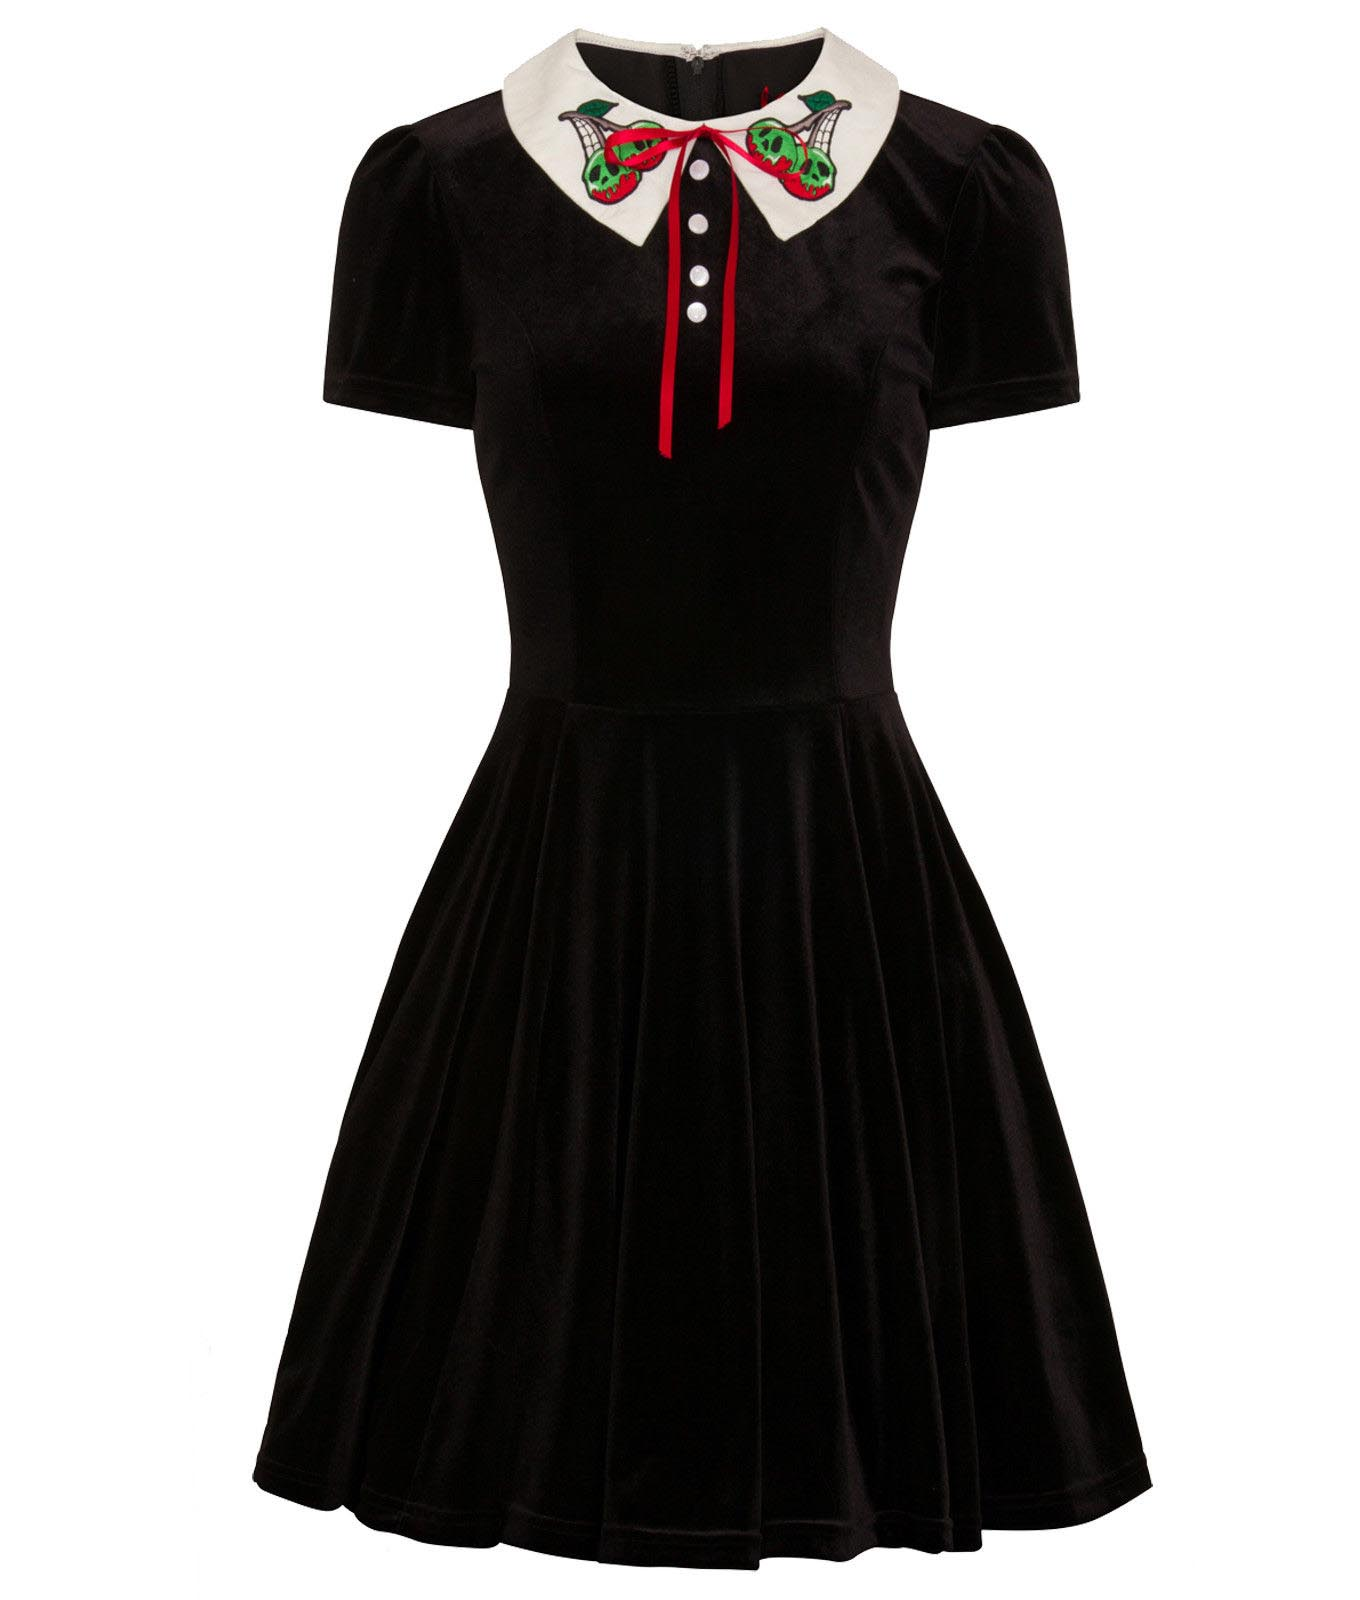 Hell-Bunny-Goth-Mini-Skater-Dress-NIGHTSHADE-Poison-Cherry-Black-Velvet-All-Size thumbnail 19